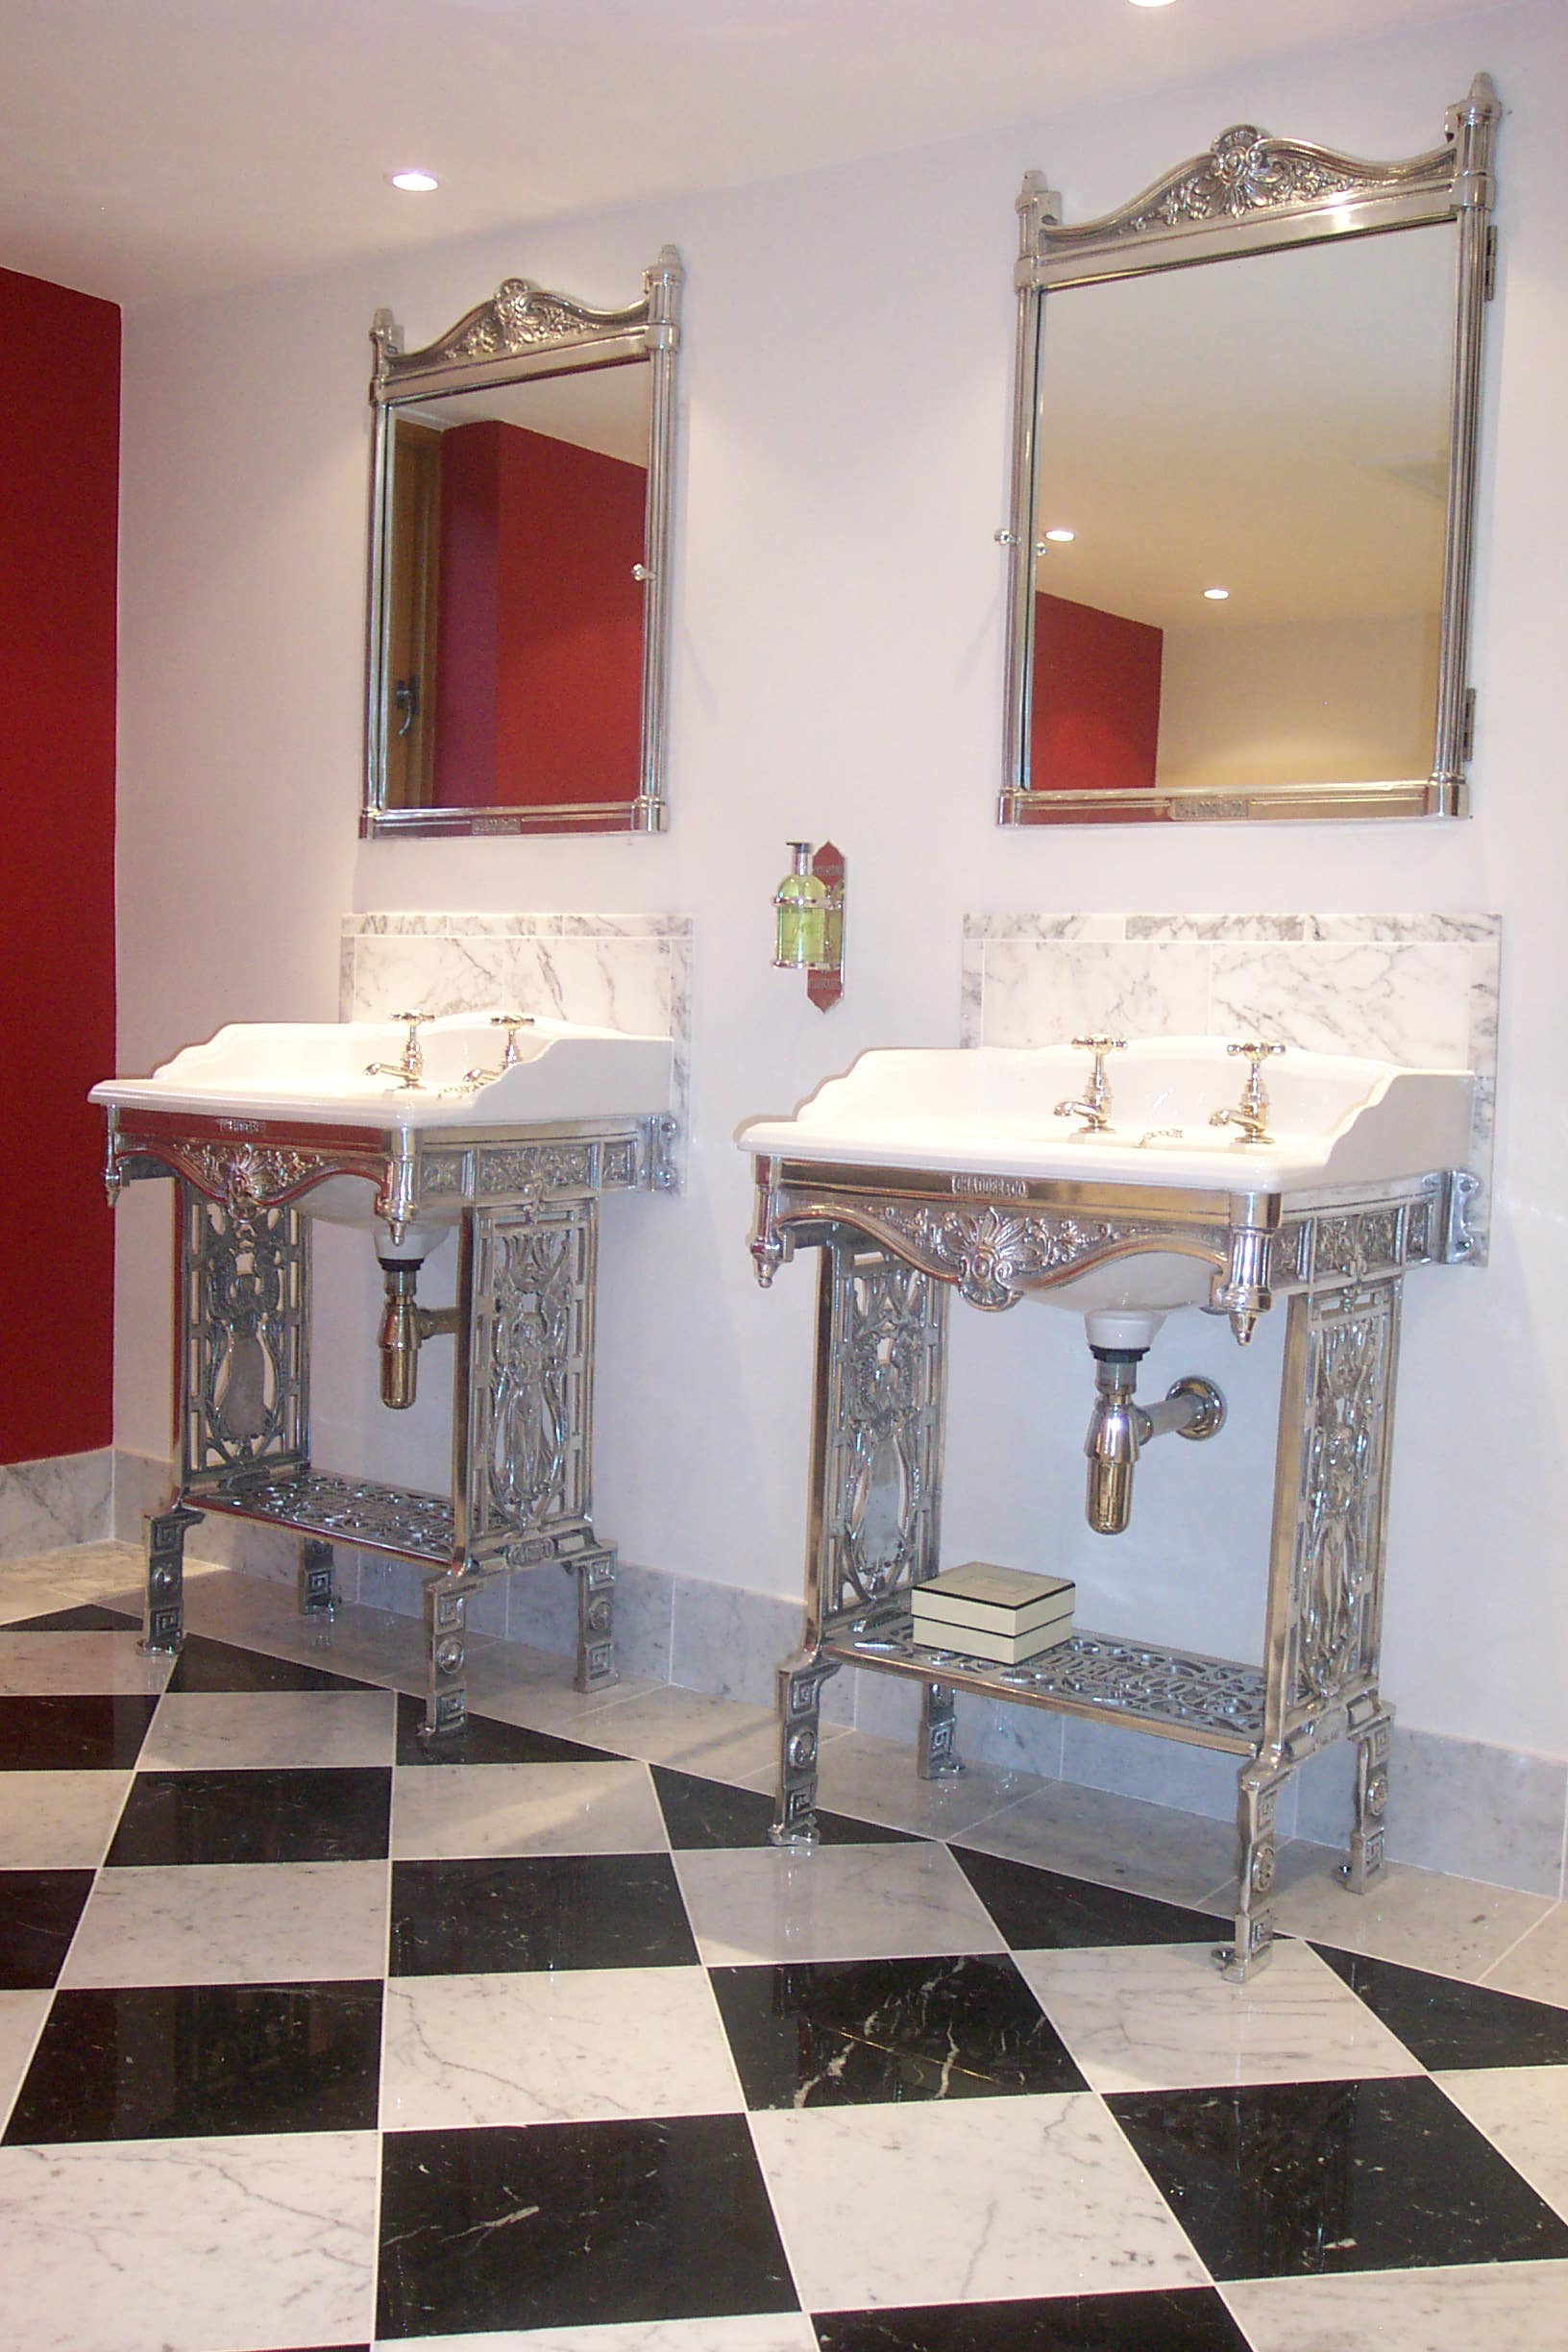 traditional style bathroom basins taps faucets mirrors